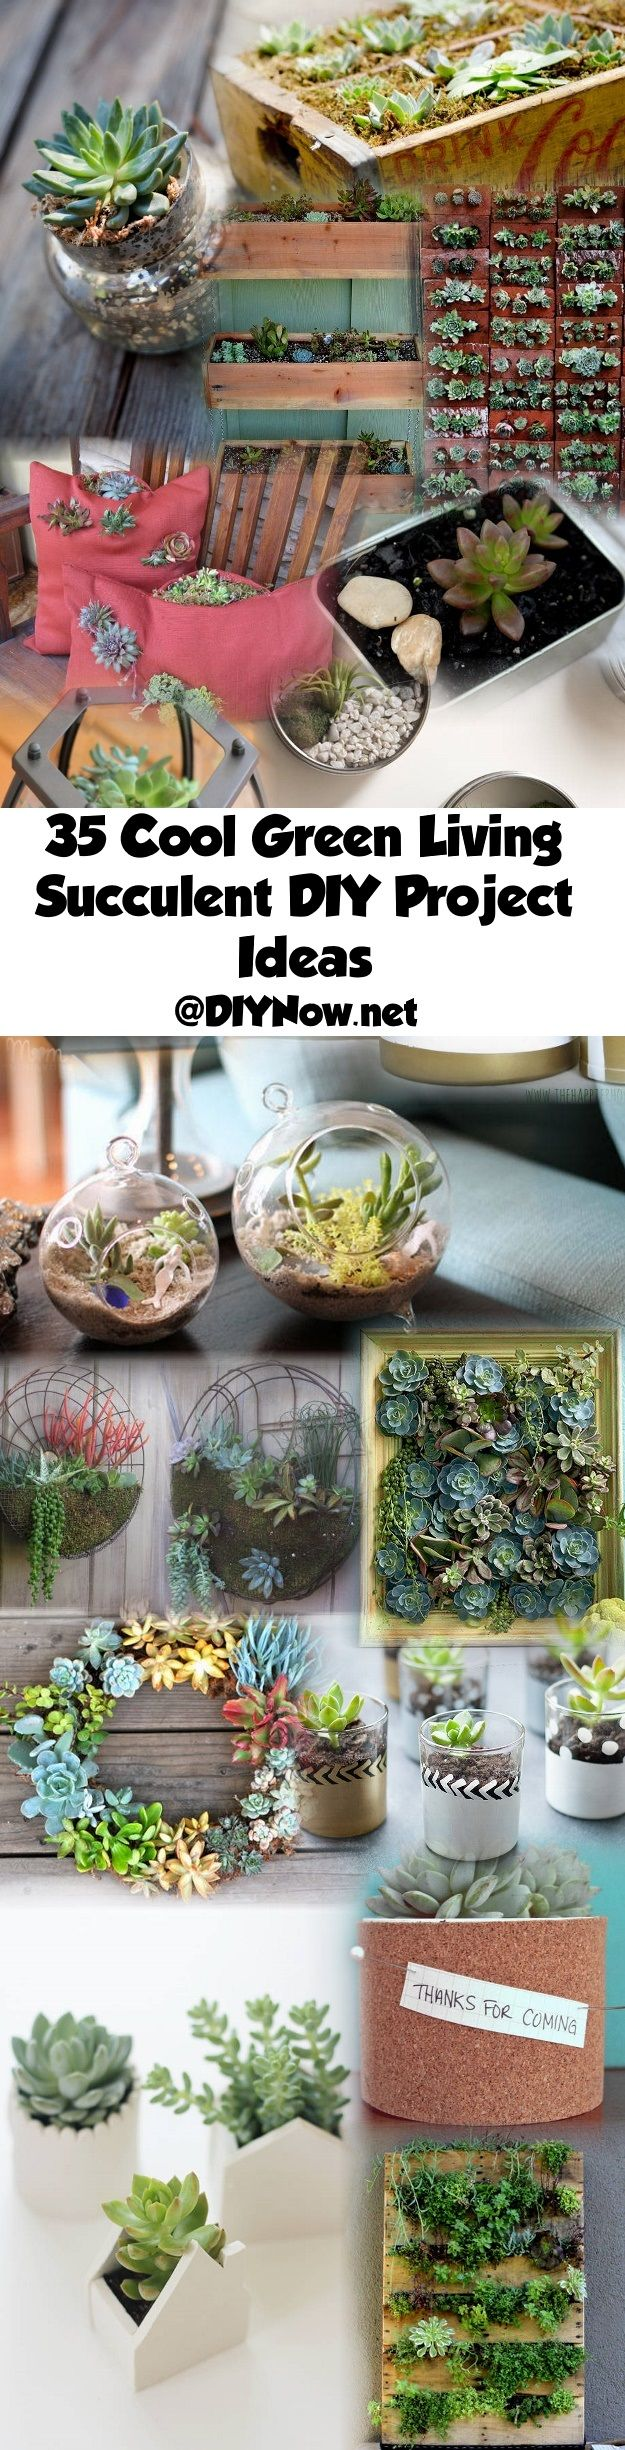 35 Cool Green Living Succulent DIY Project Ideas